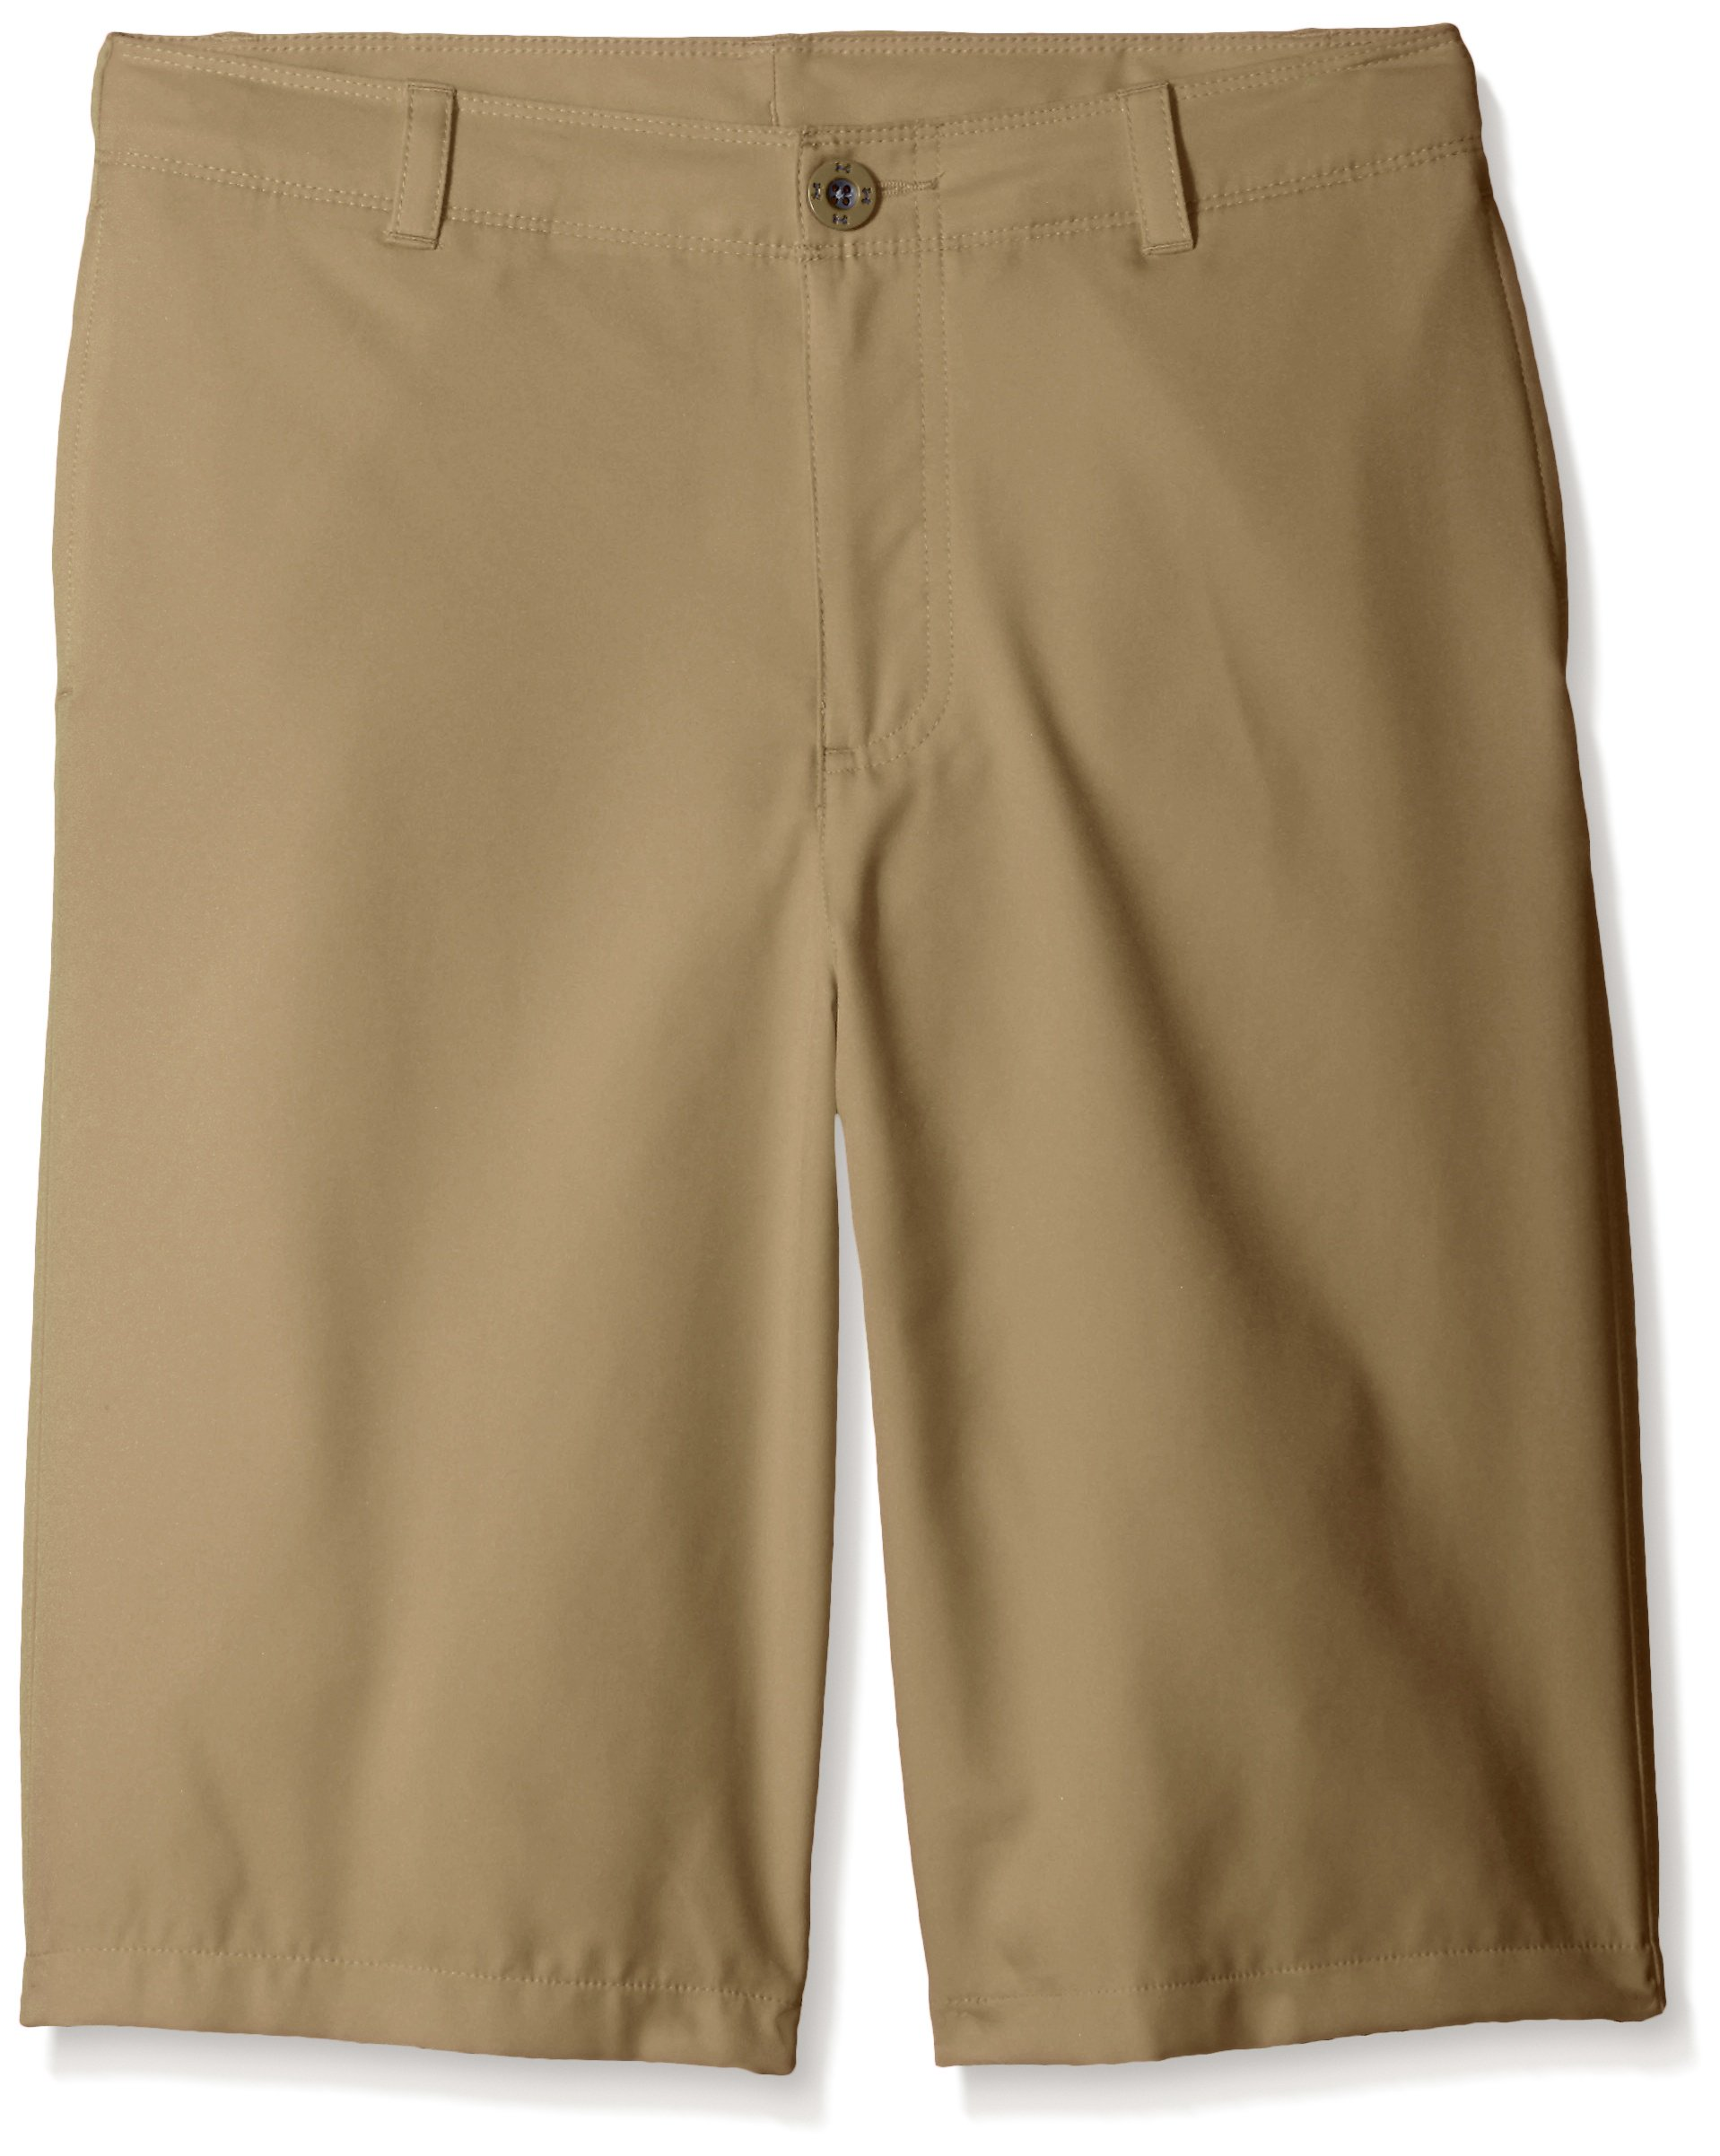 Under Armour Boys' Medal Play Golf Shorts, Canvas (254)/Graphite, Youth X-Large by Under Armour